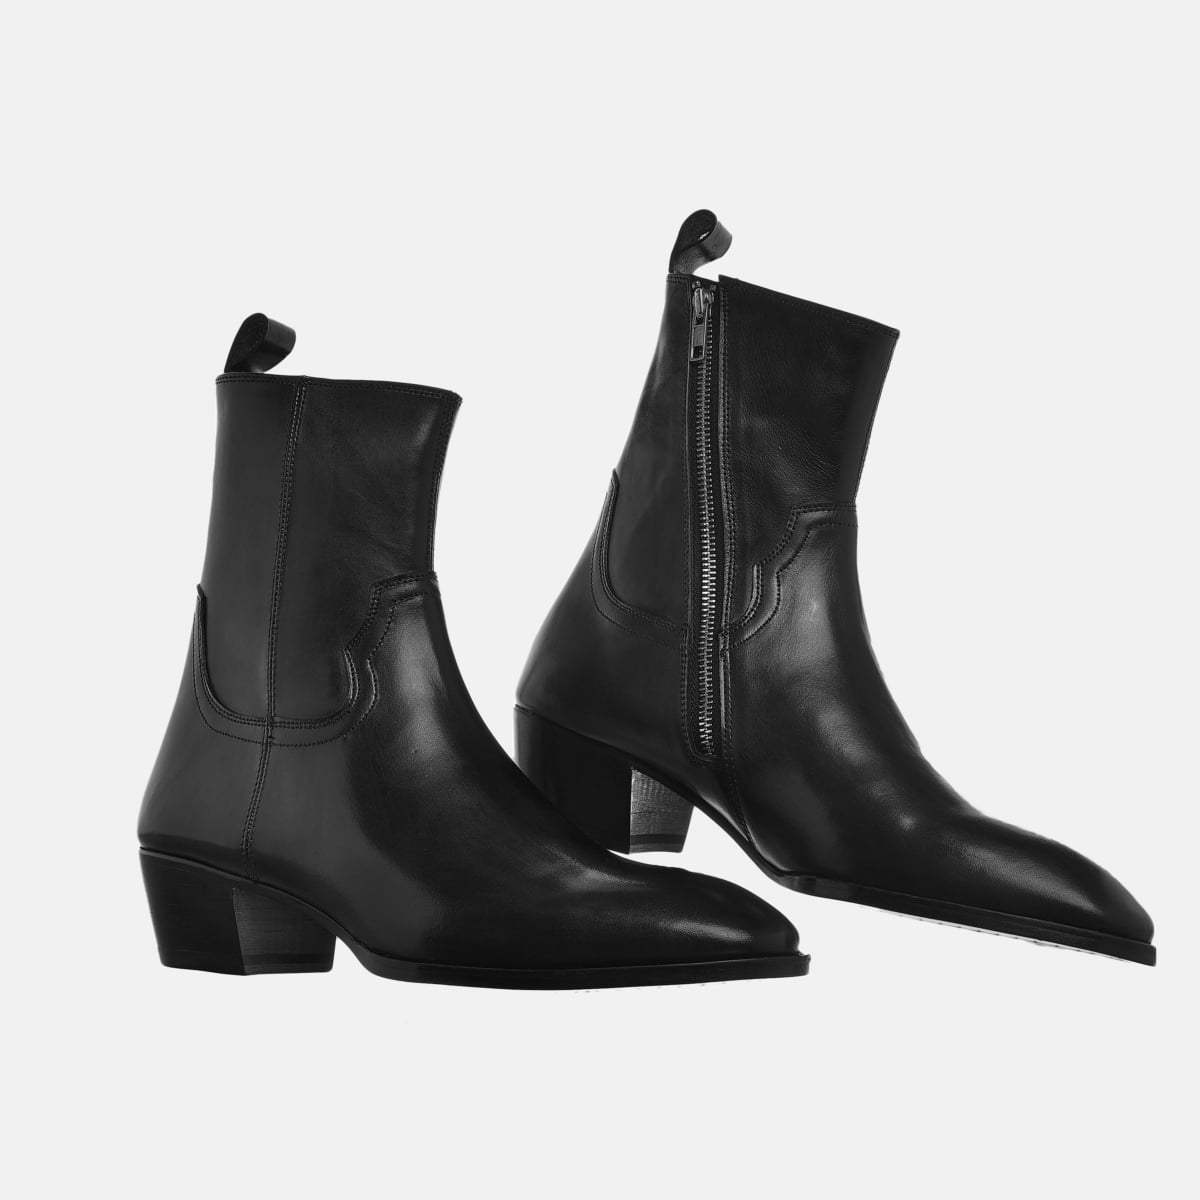 Leather Zip Boots In Black Leather Zip Boots In Black SS2020 2